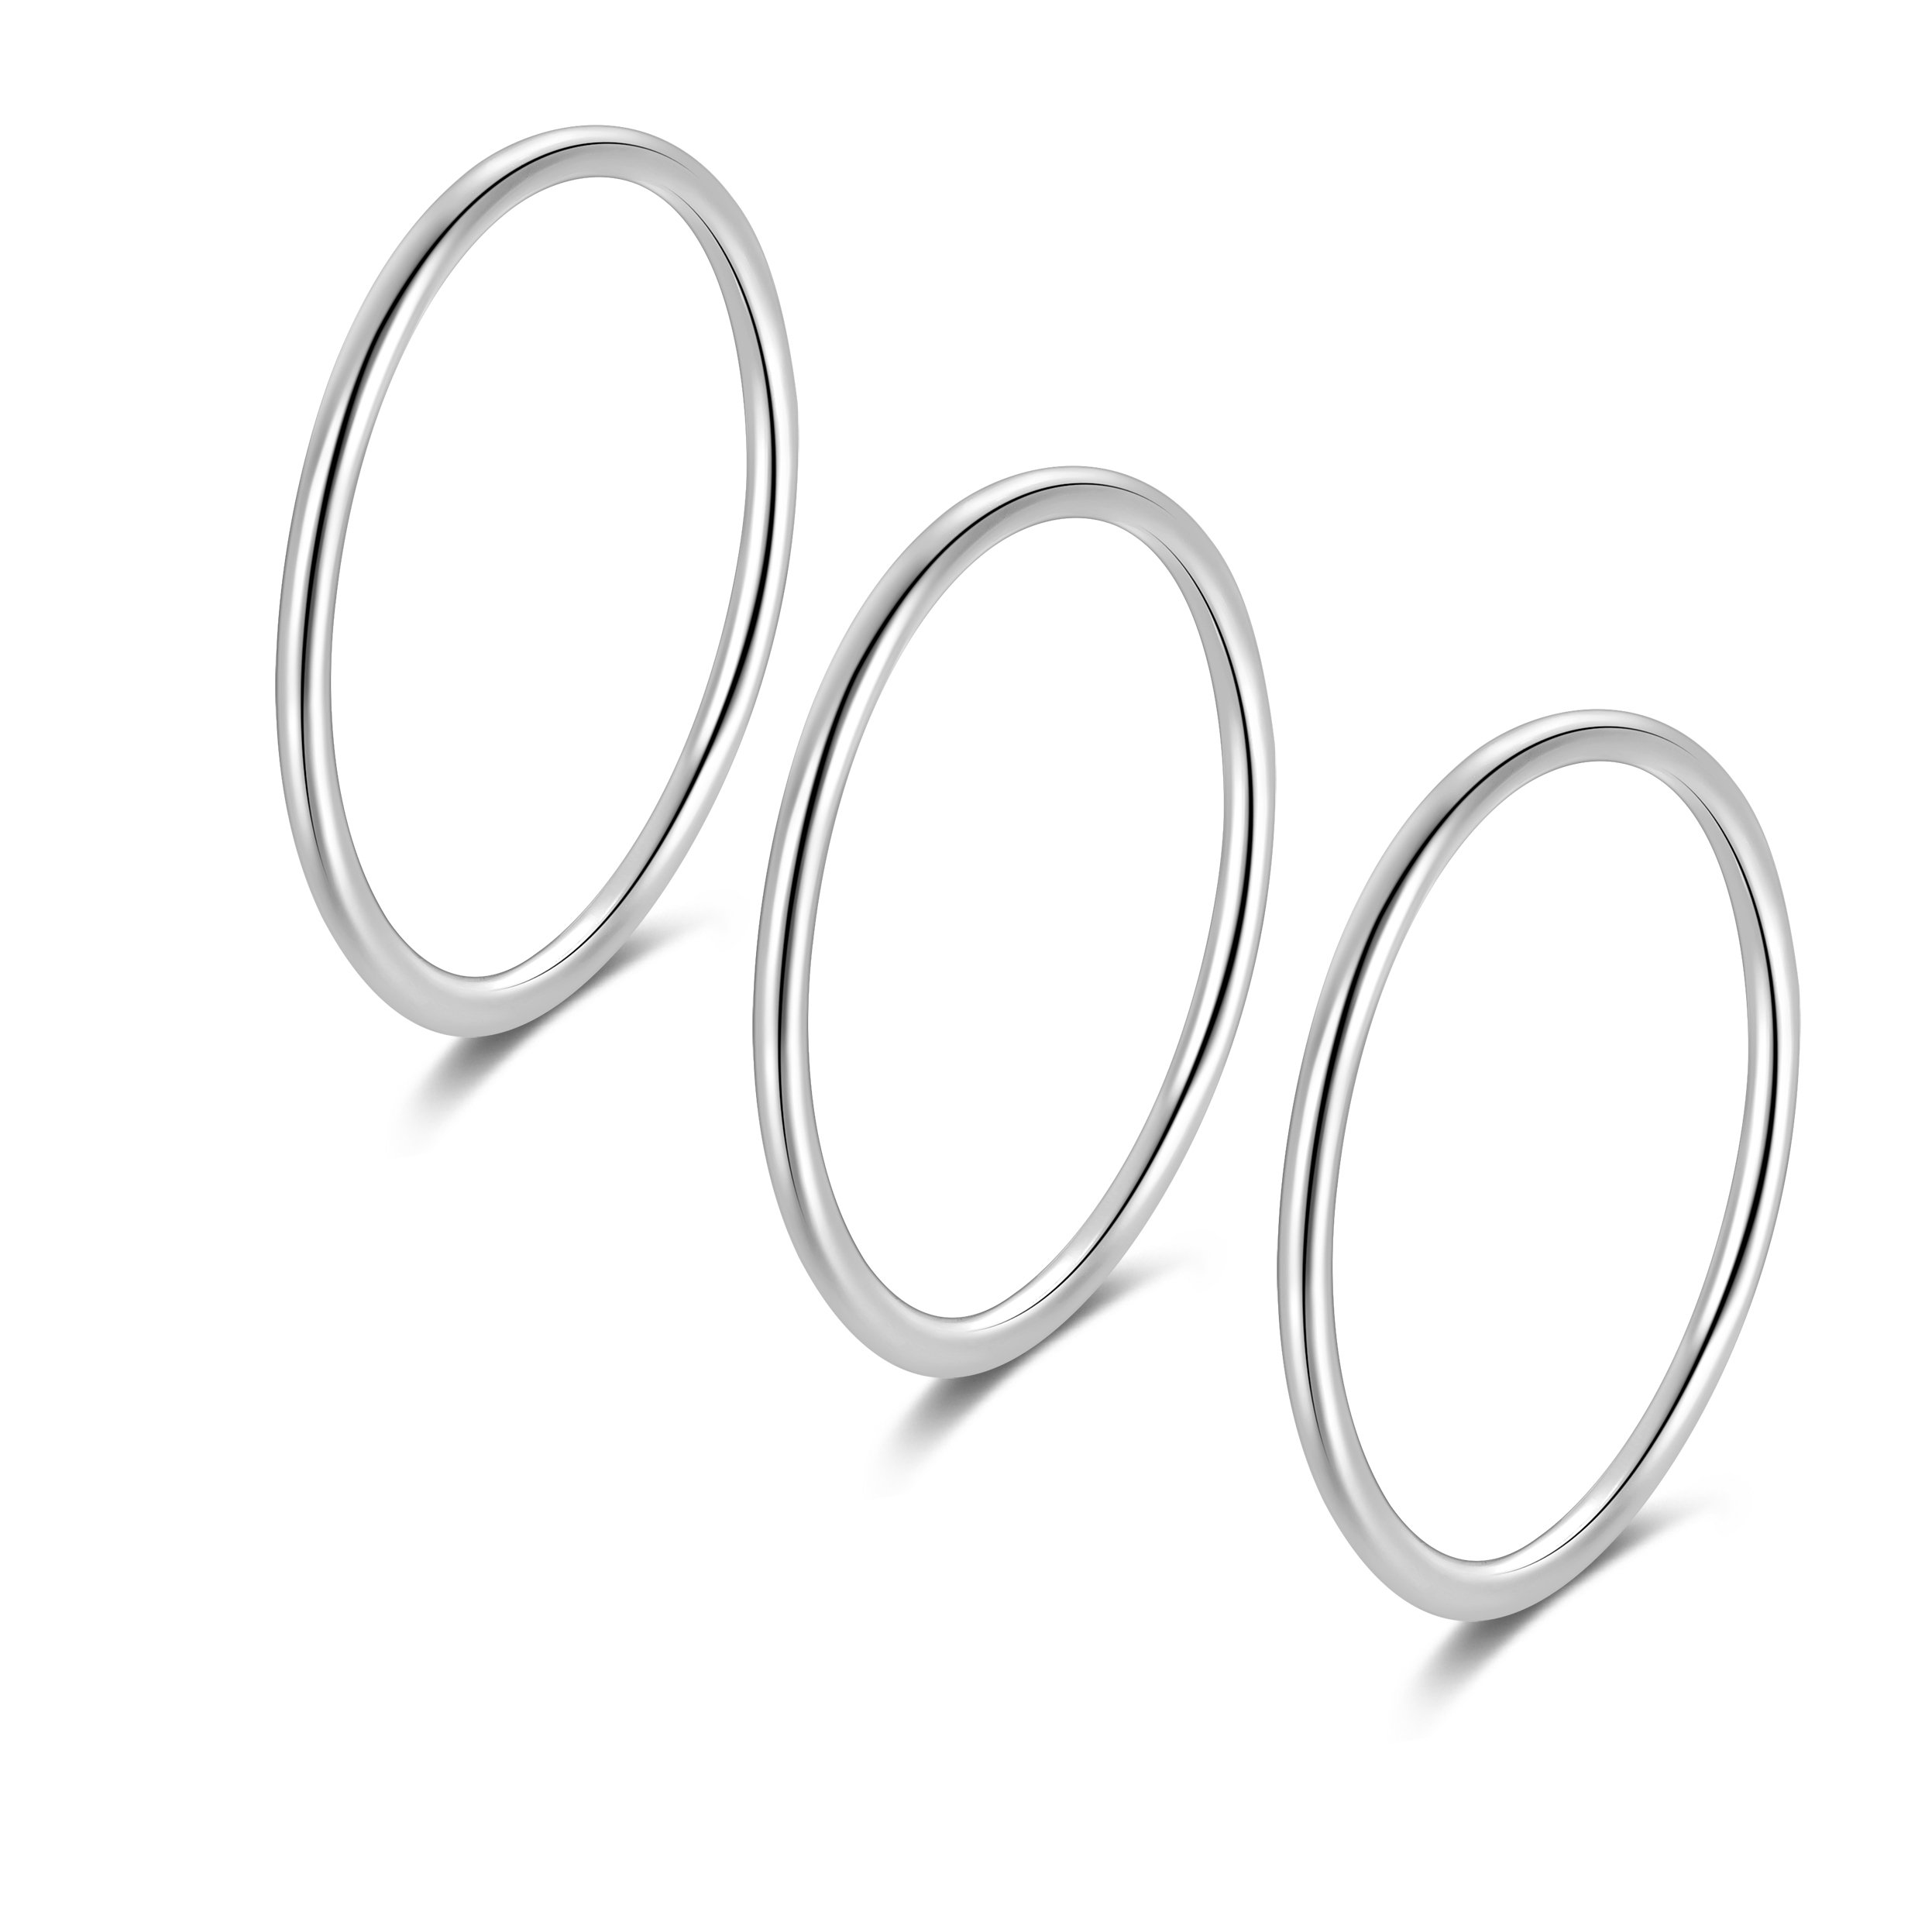 Silbertale 1.2mm 925 Sterling Silver Thin Circle Ring Stacking Bands Men Women Girls Size 6 3pcs set